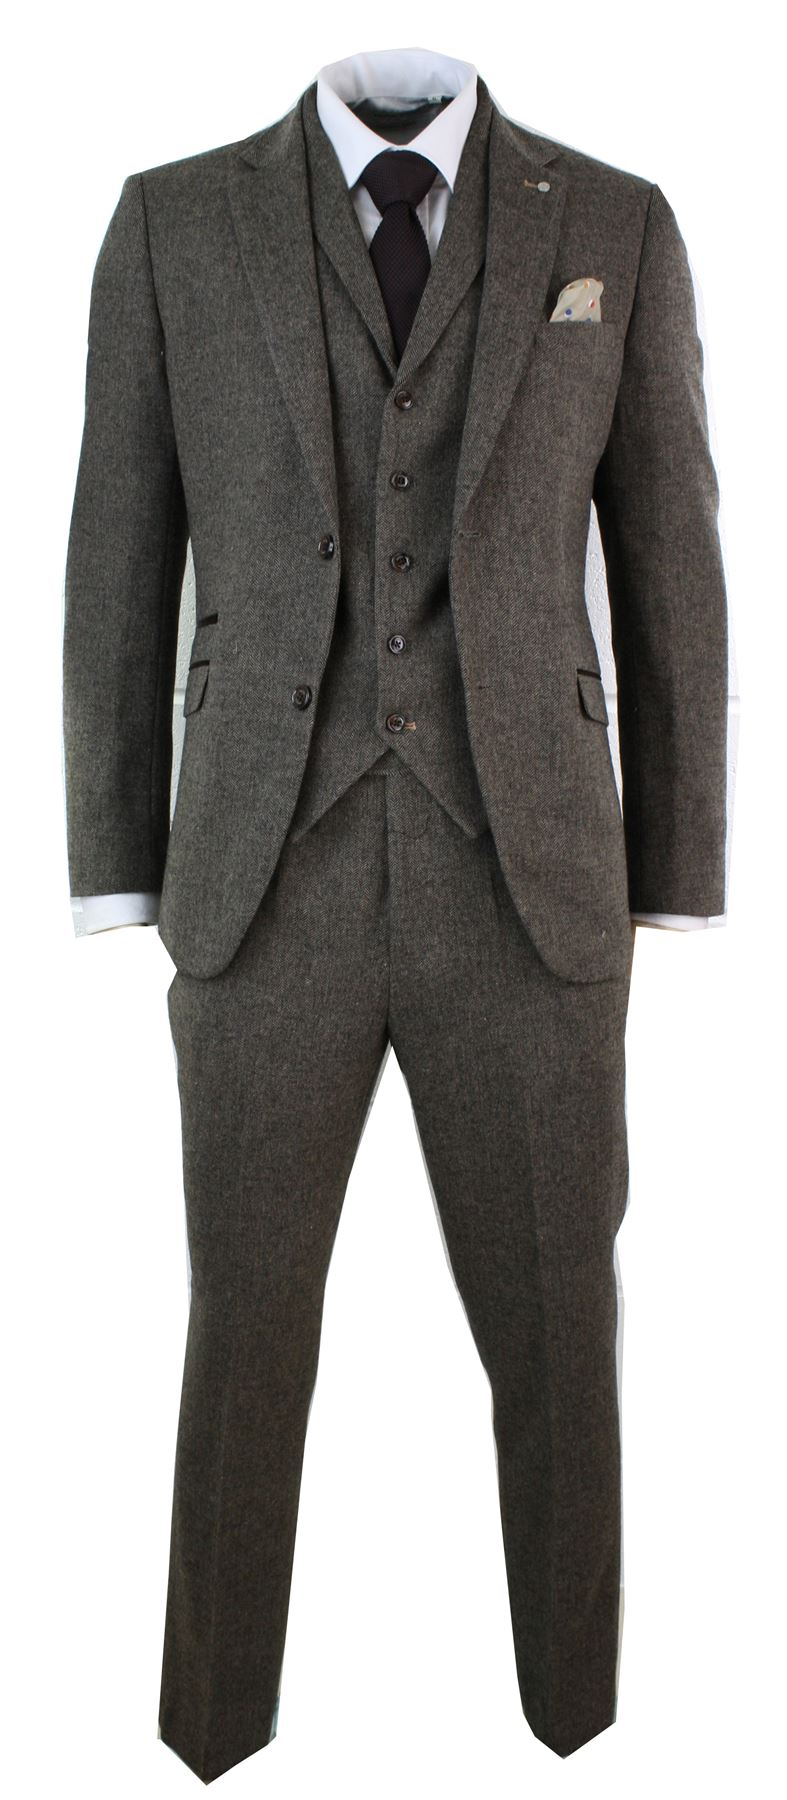 All Empire Outlet tweed suits are exquisitely hand made to order, with meticulous attention to detail. Quintessential British styling at it's best, you'll look every inch .